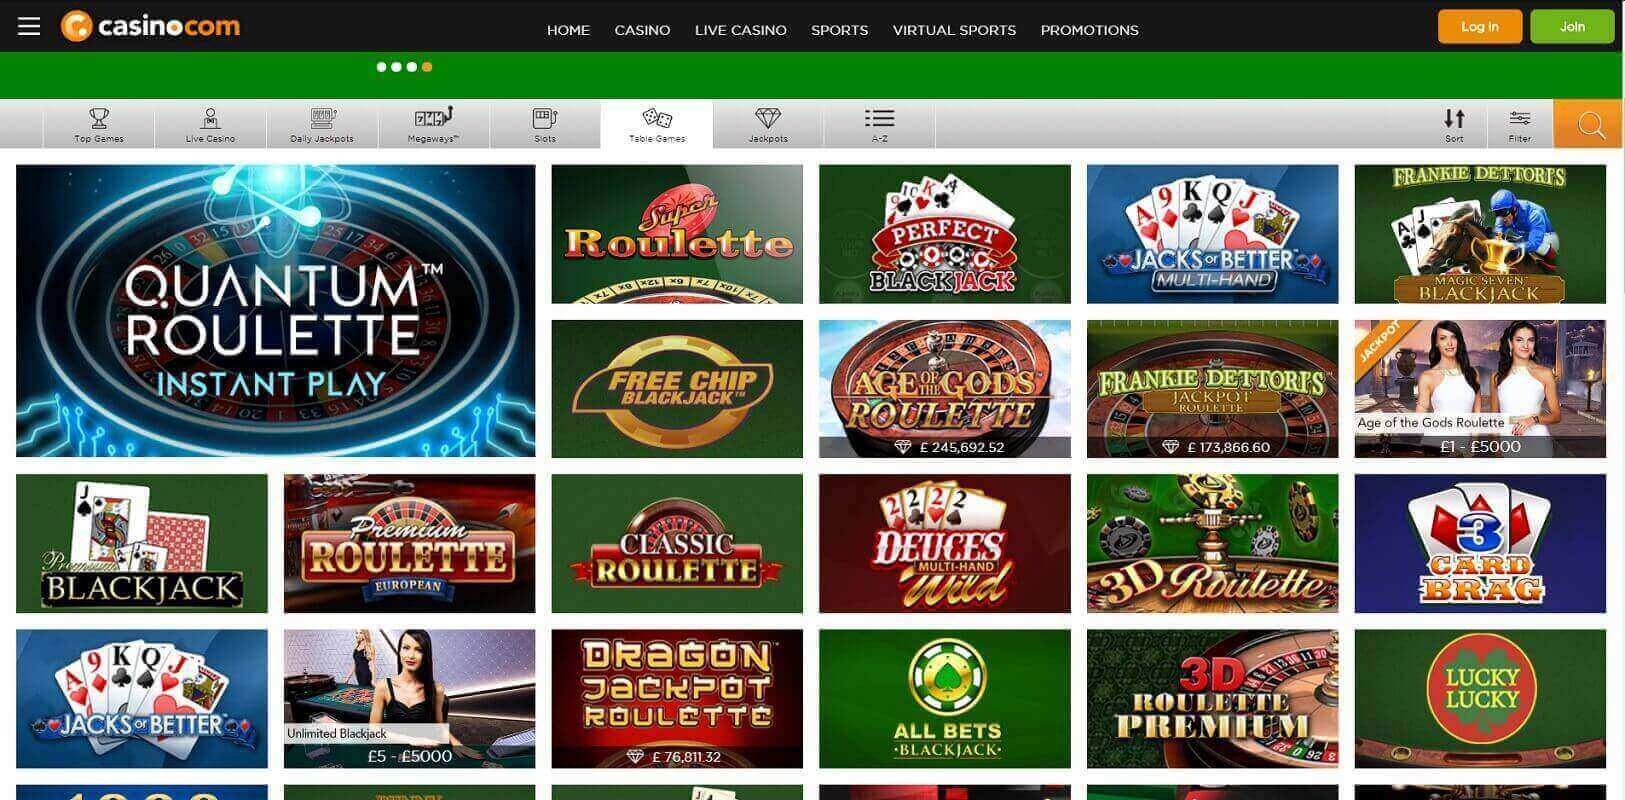 Game choice at Casino.com online casino